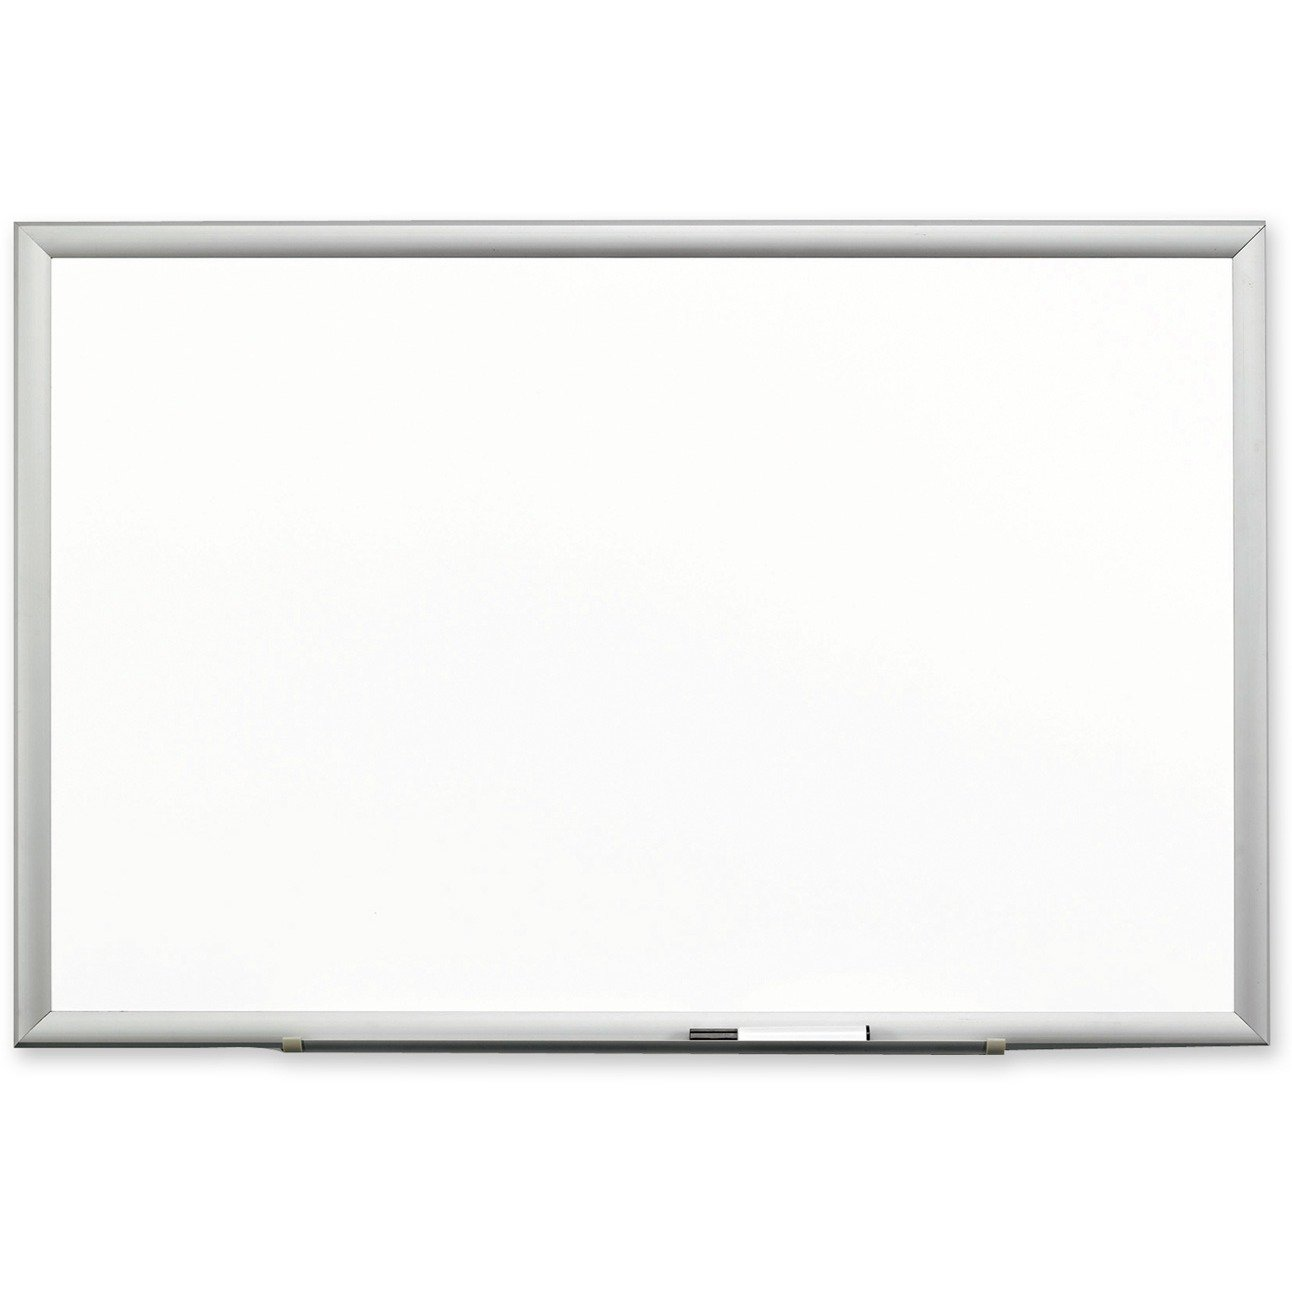 3M Porcelain Dry Erase Board, 72 x 48 Inches, Aluminum Frame (DEP7248A)